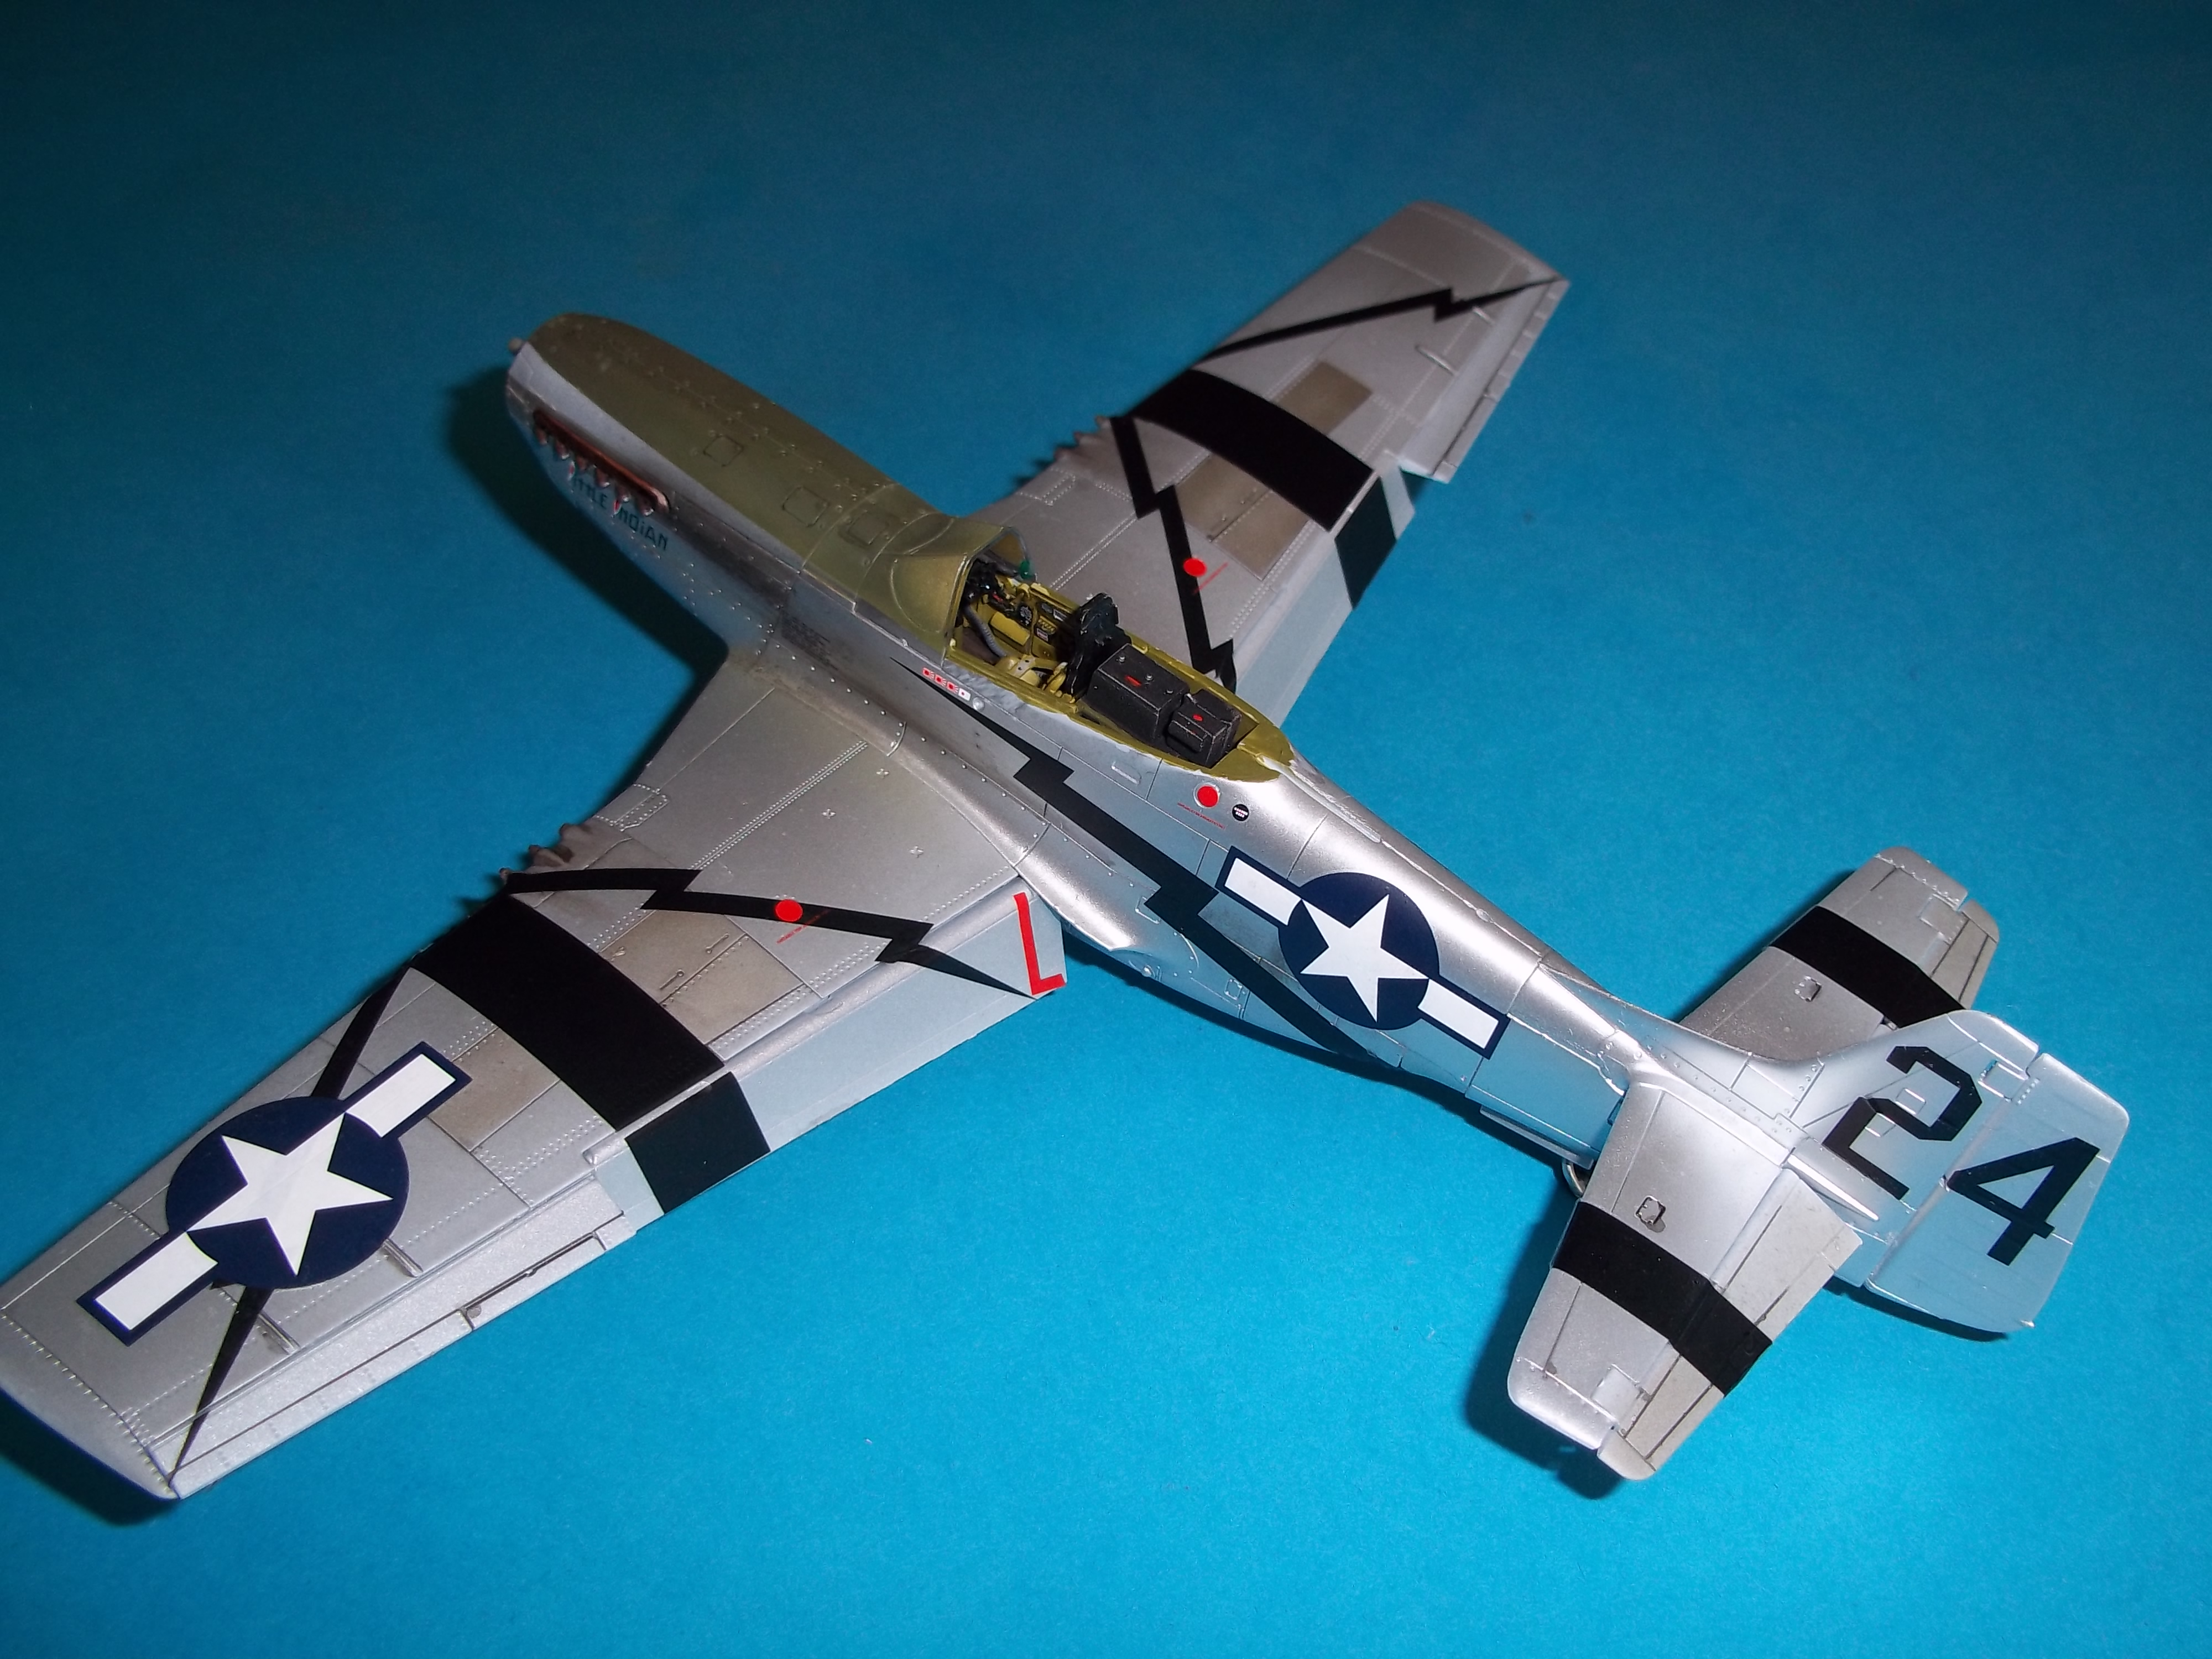 P 51D mustang 1/48 airfix  - Page 2 18101205440240979